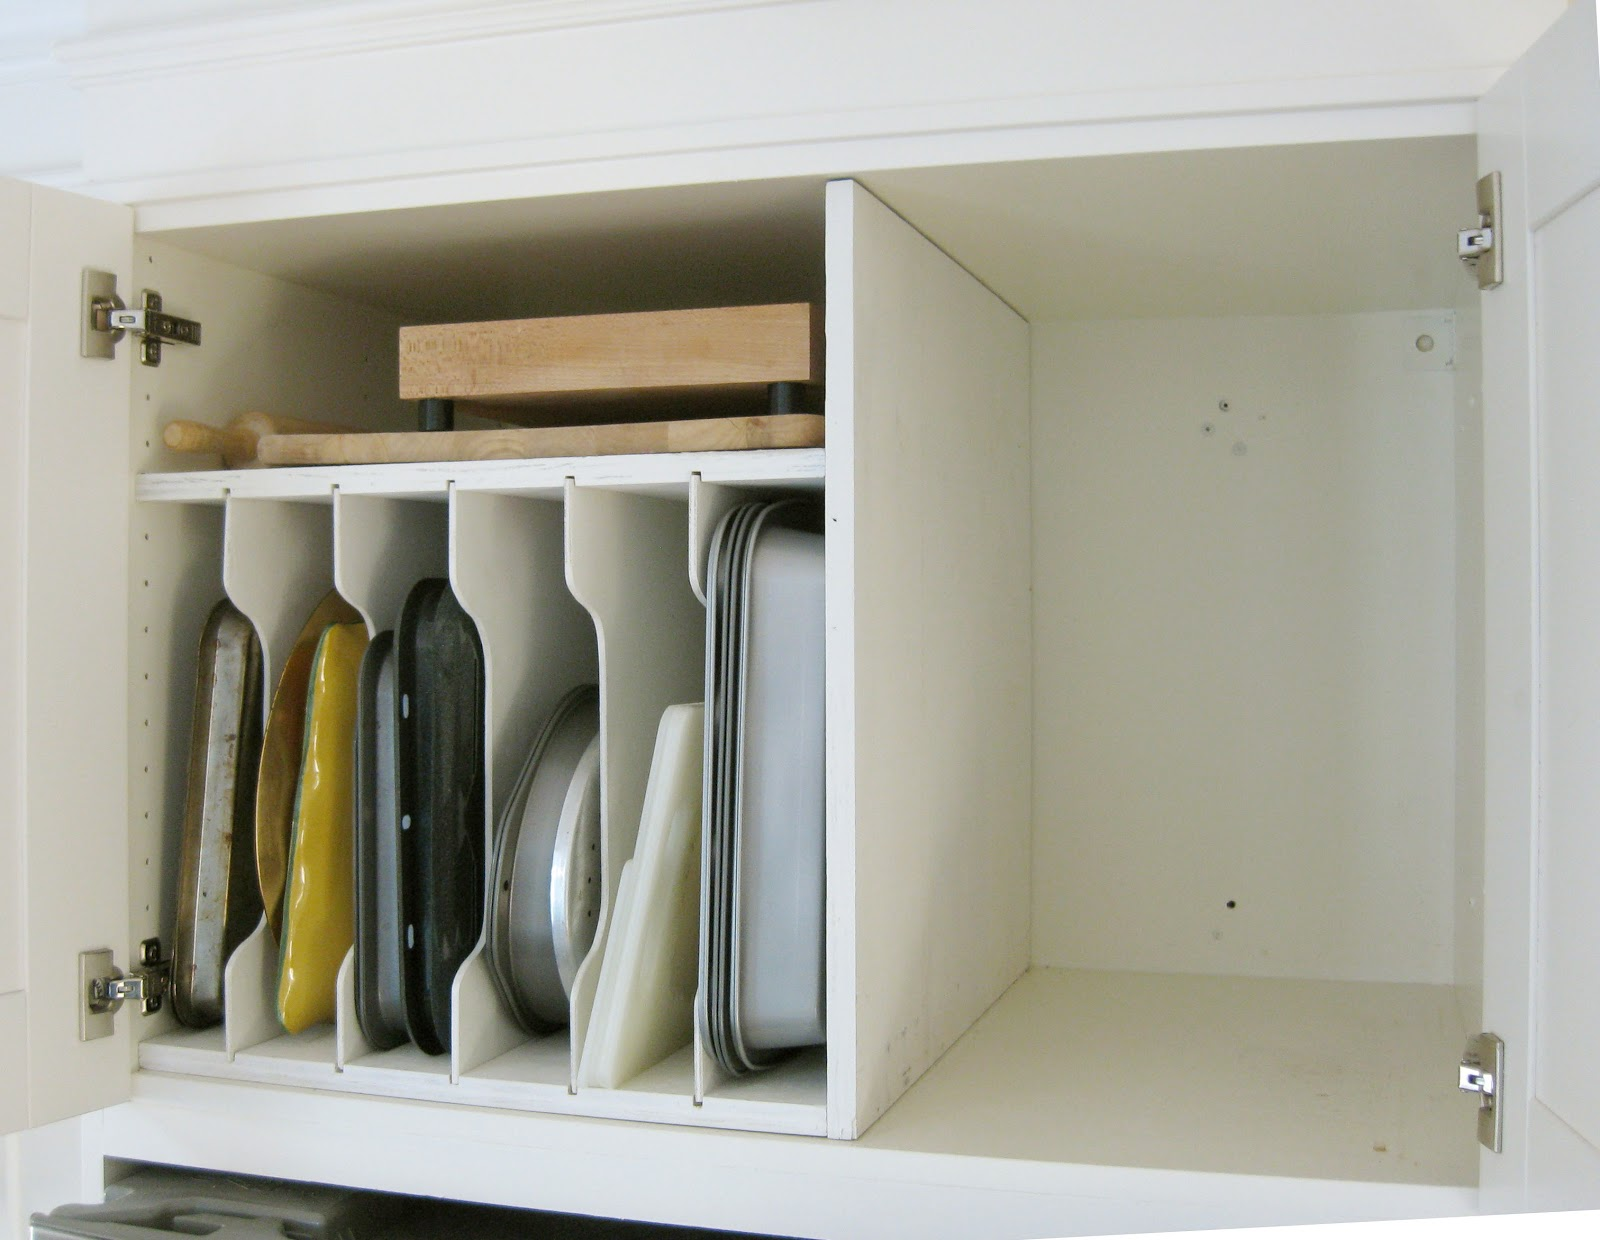 In Cabinet Drawers Kitchen Organization How To Install Pull Out Drawers In Cabinet